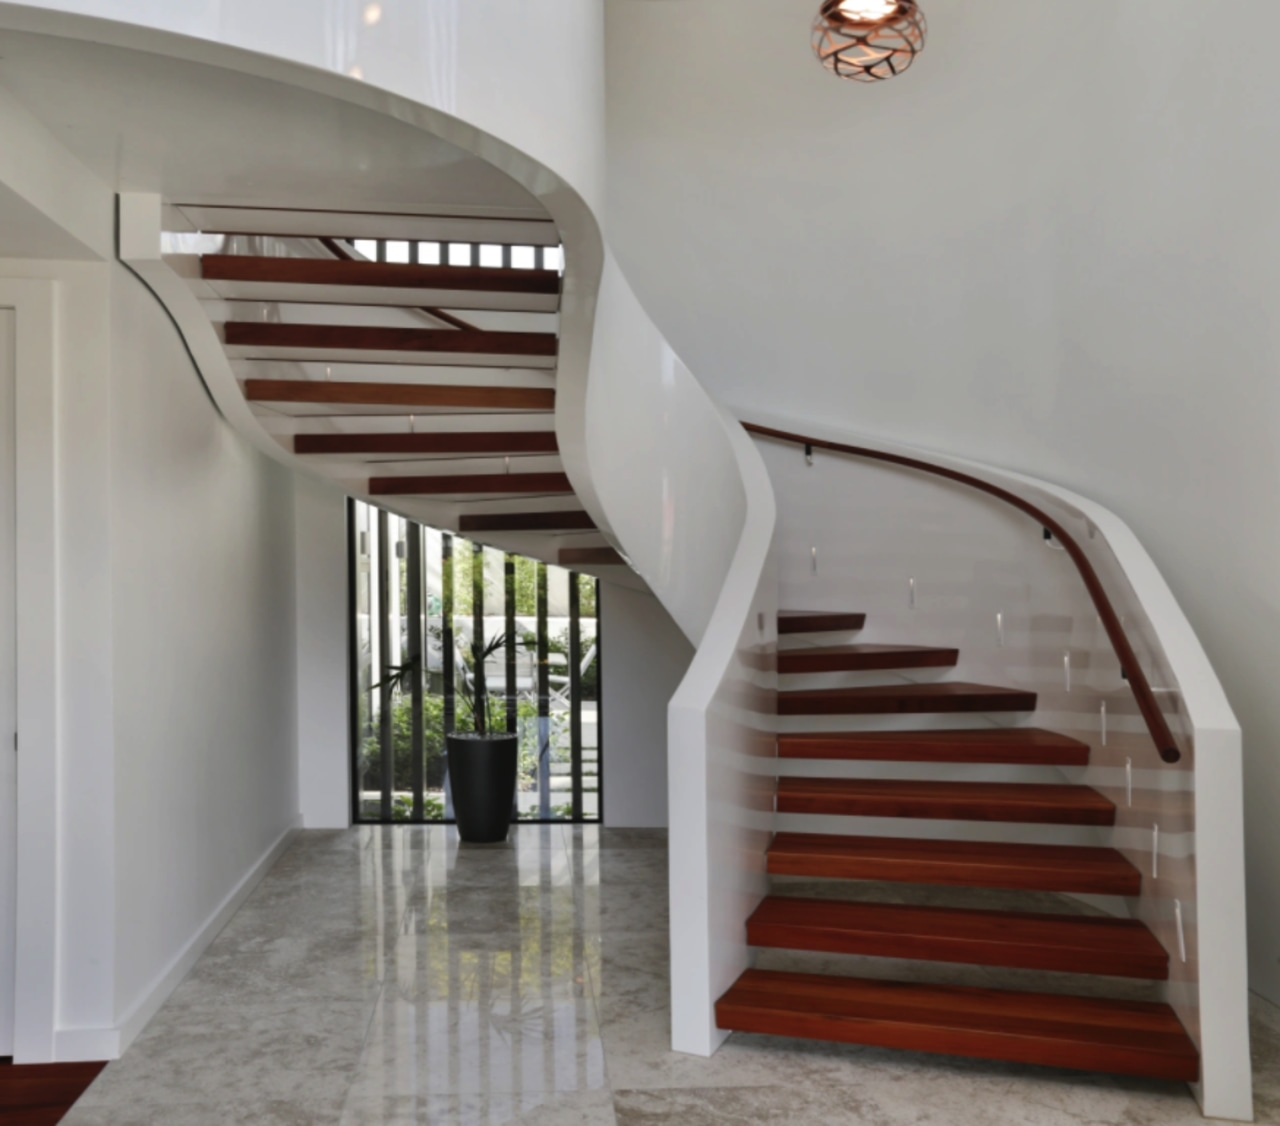 On this lux seafront home, the steel stair